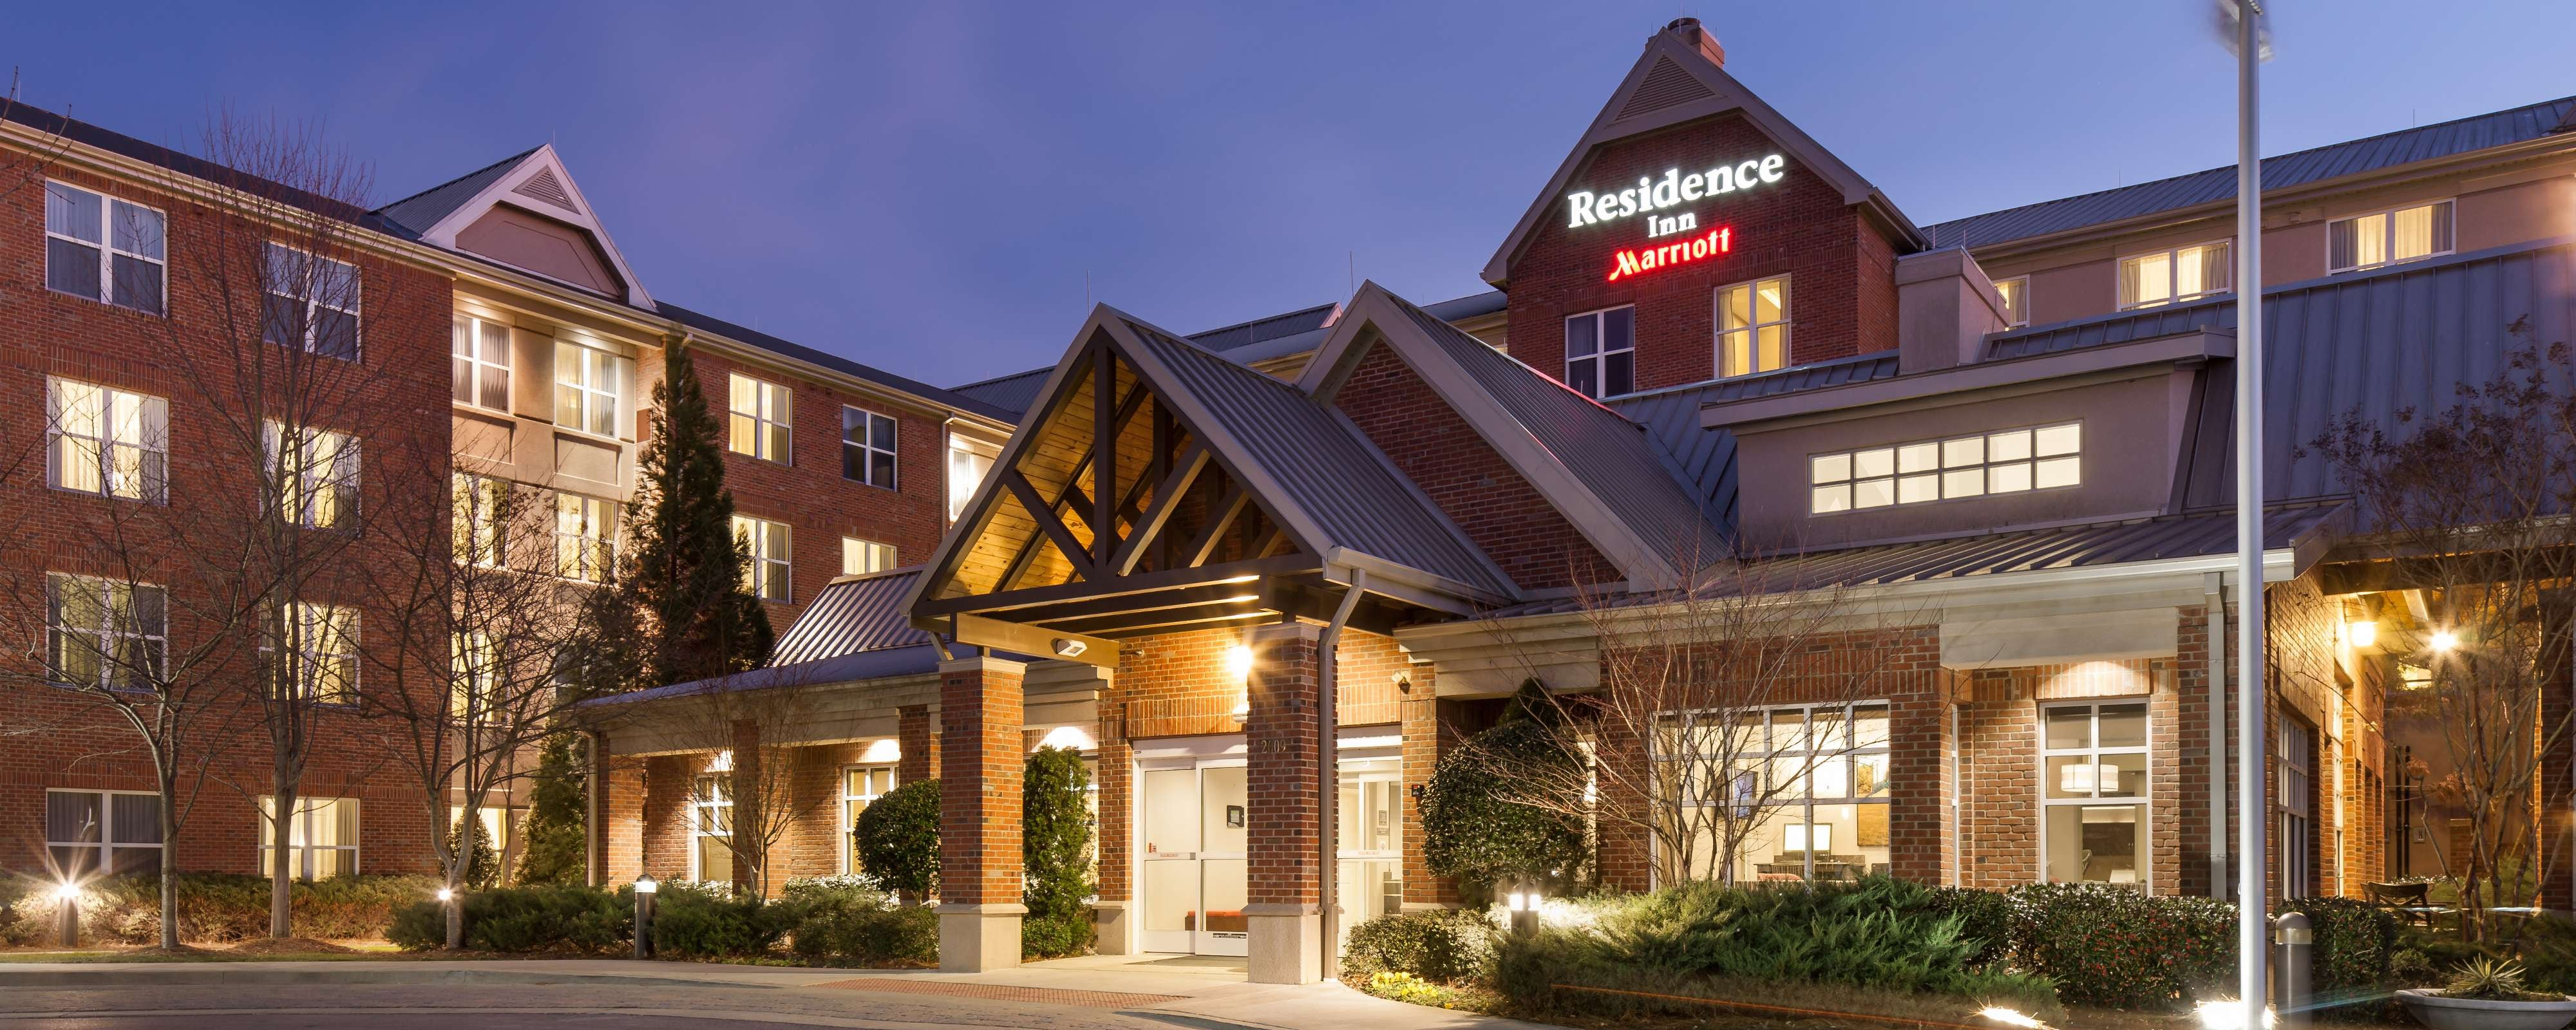 Extended-Stay Franklin, Tennessee Hotels | Residence Inn Franklin ...